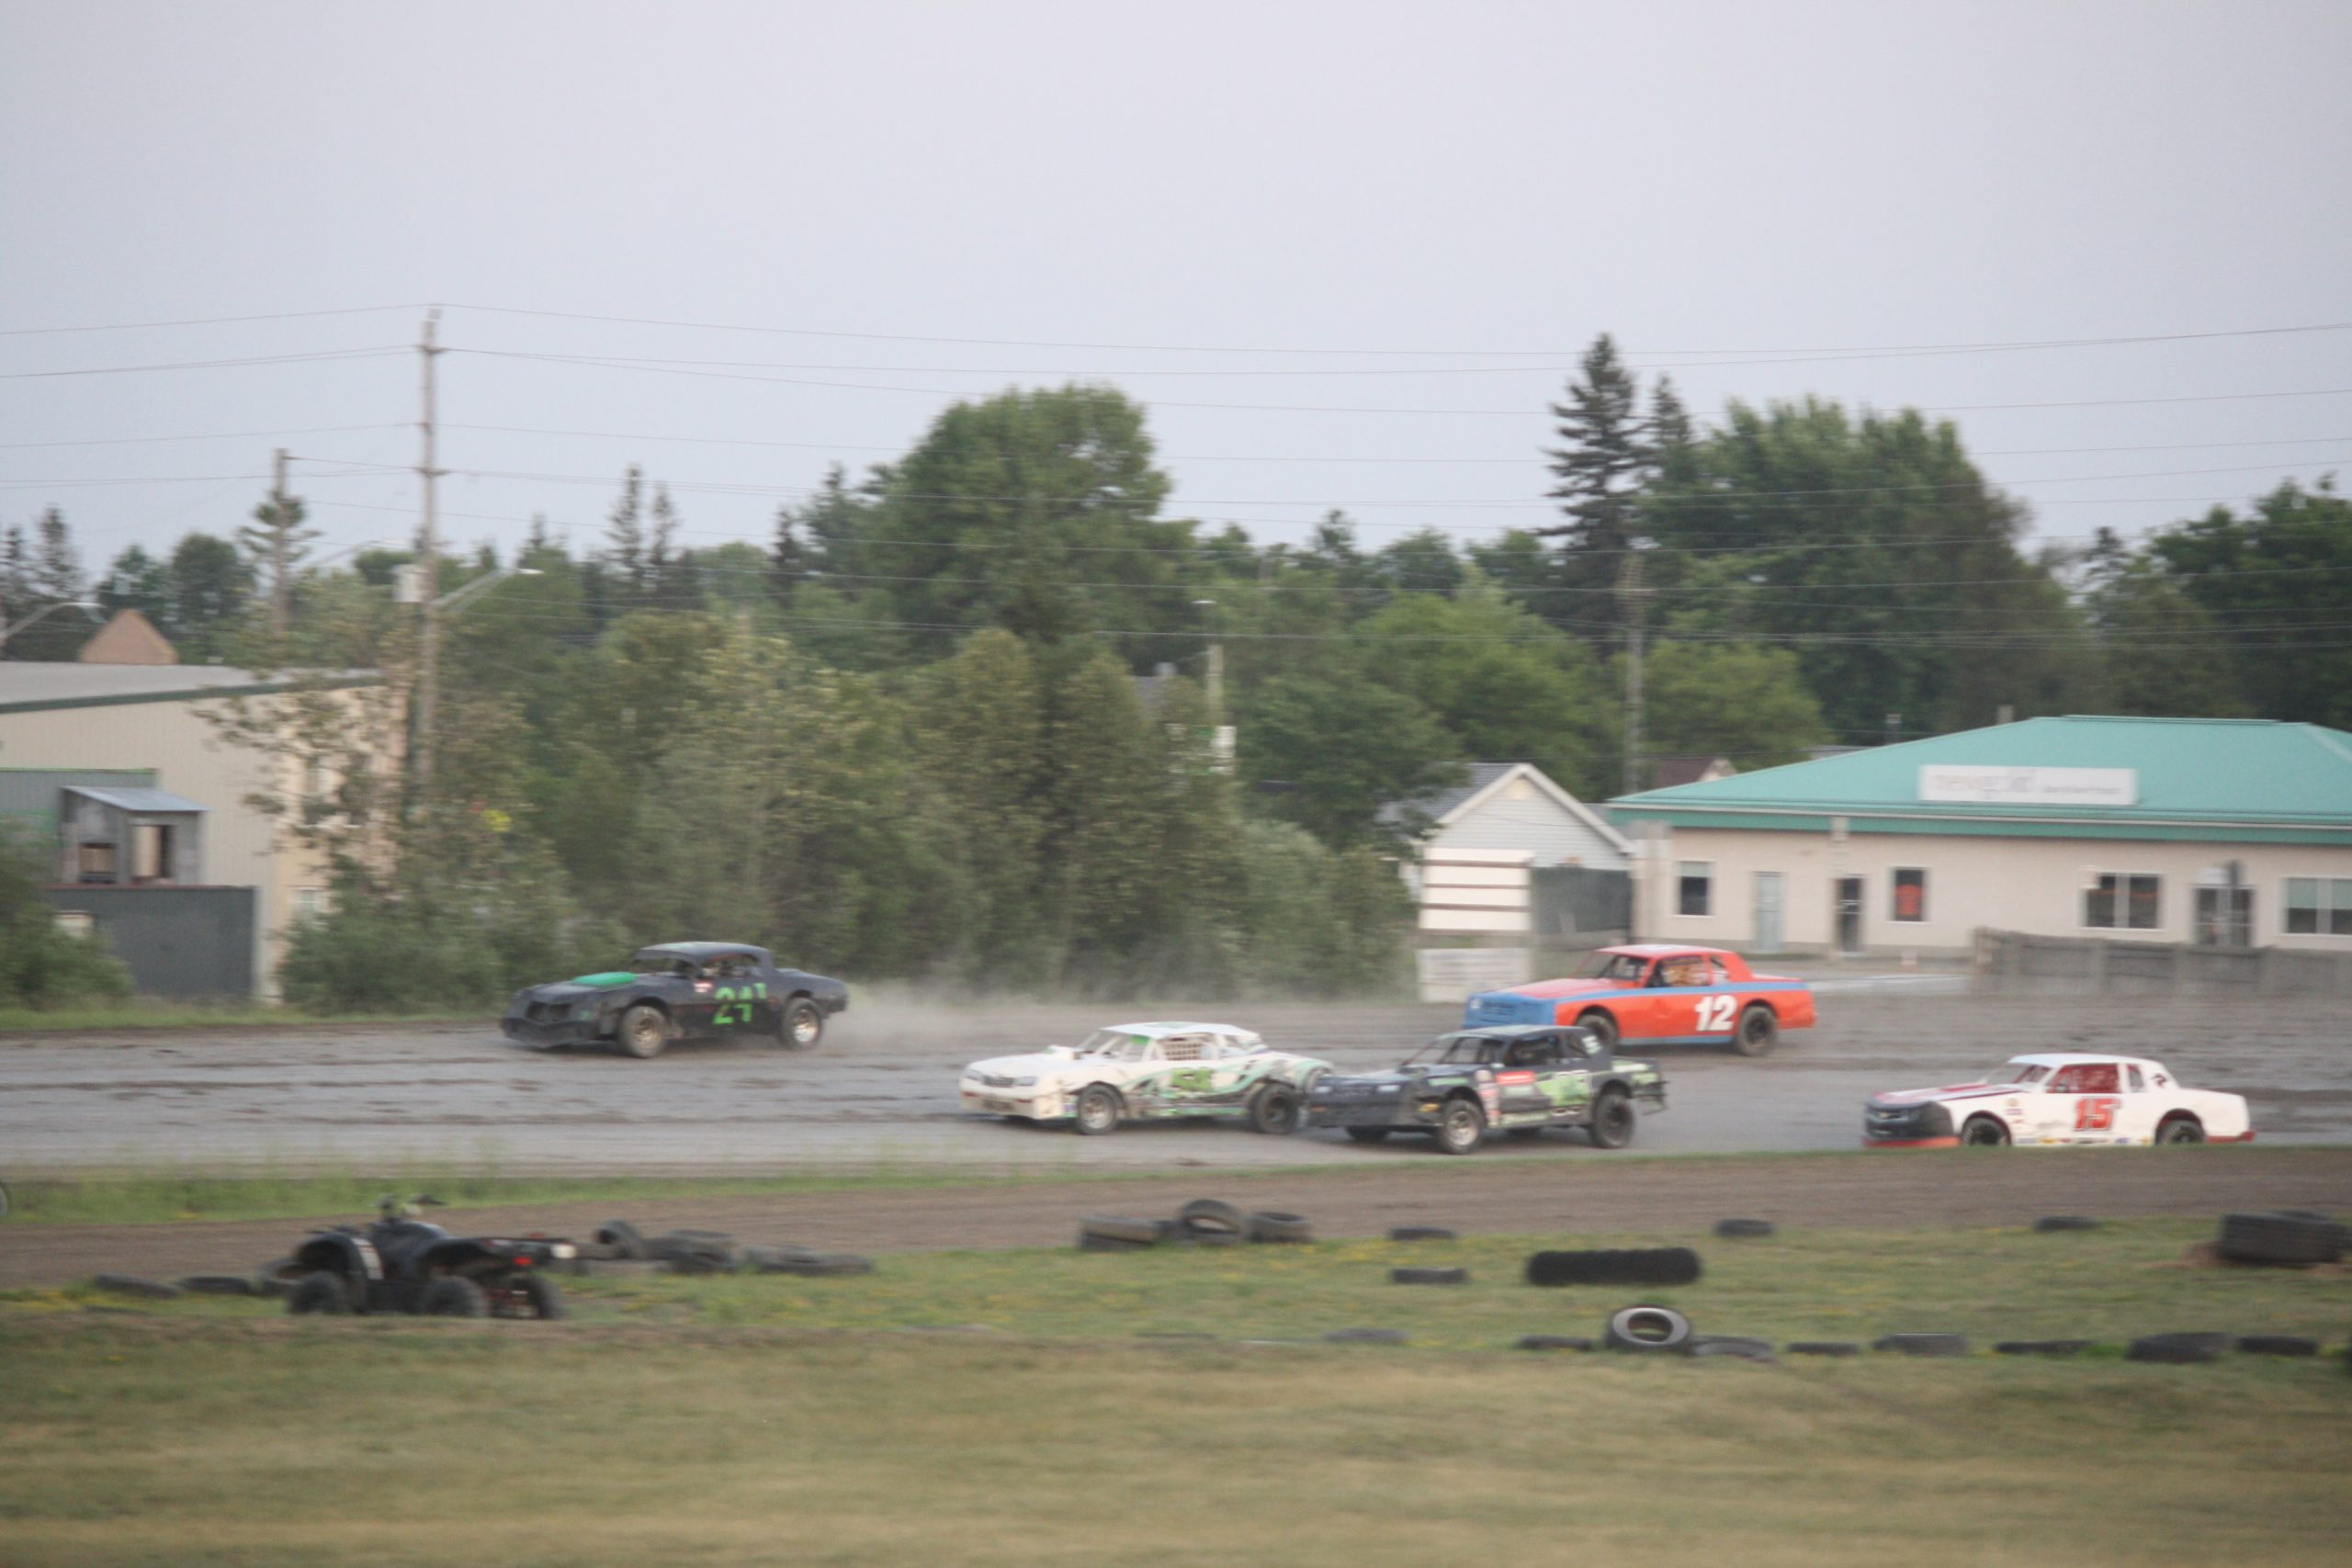 Racing season heating up at Emo Speedway with Street Stocks